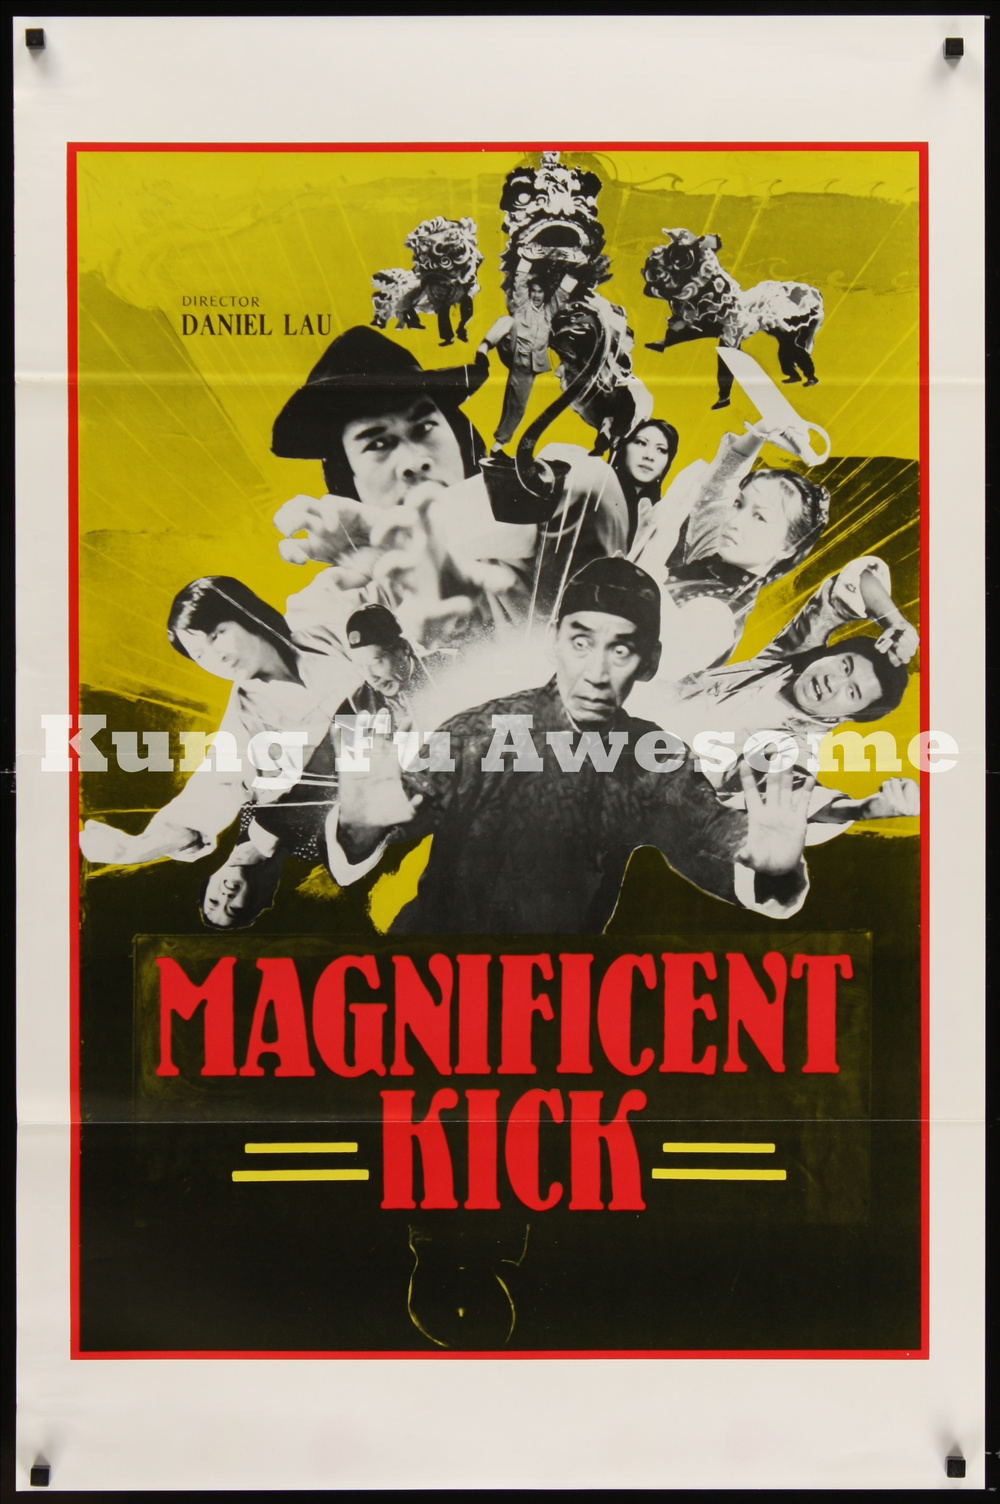 magnificent_kick_teaser_NZ03773_L.jpg